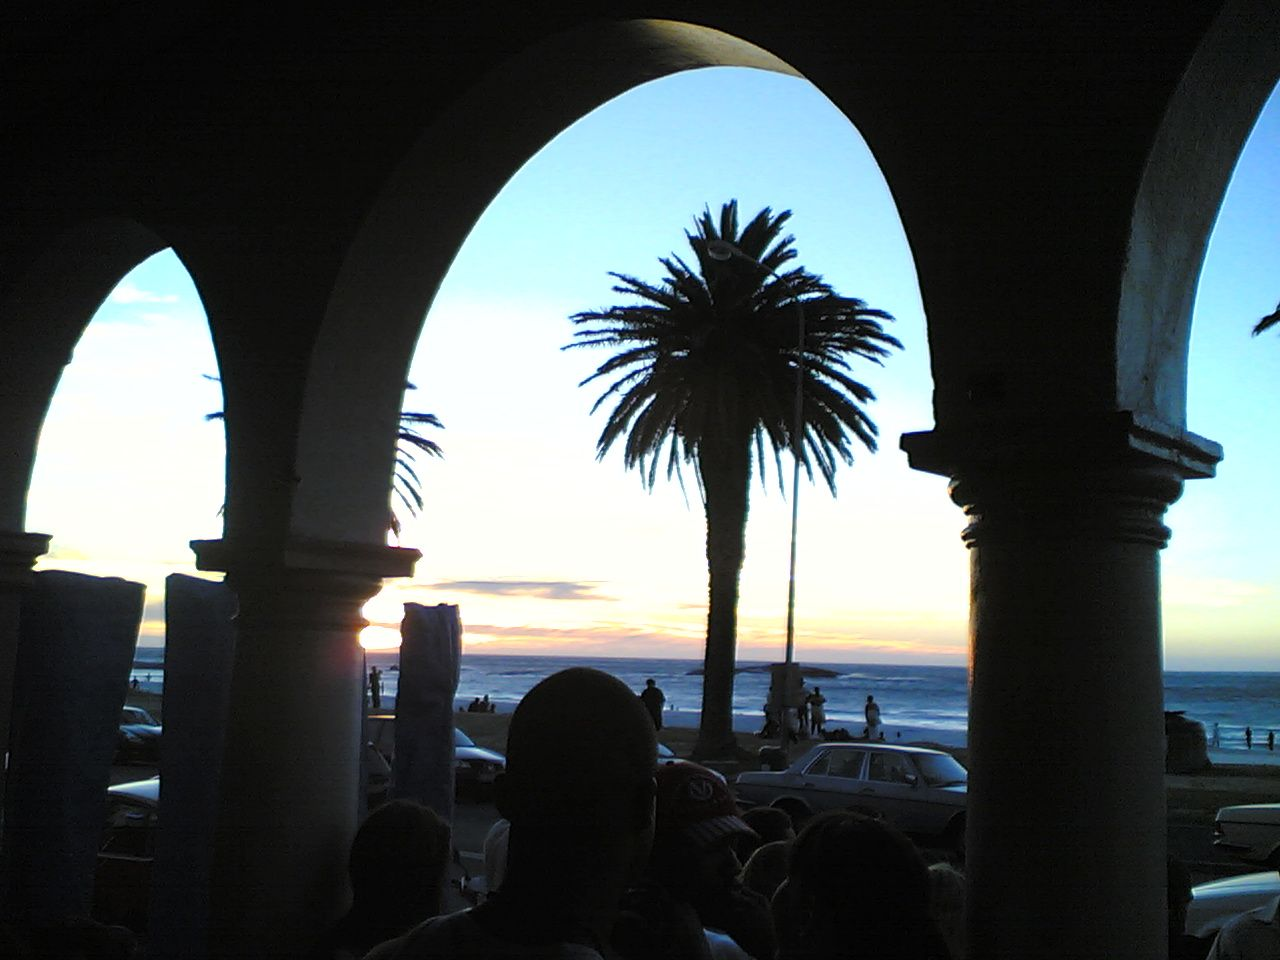 Sunset at Caprice Campsbay South africa, Places ive been